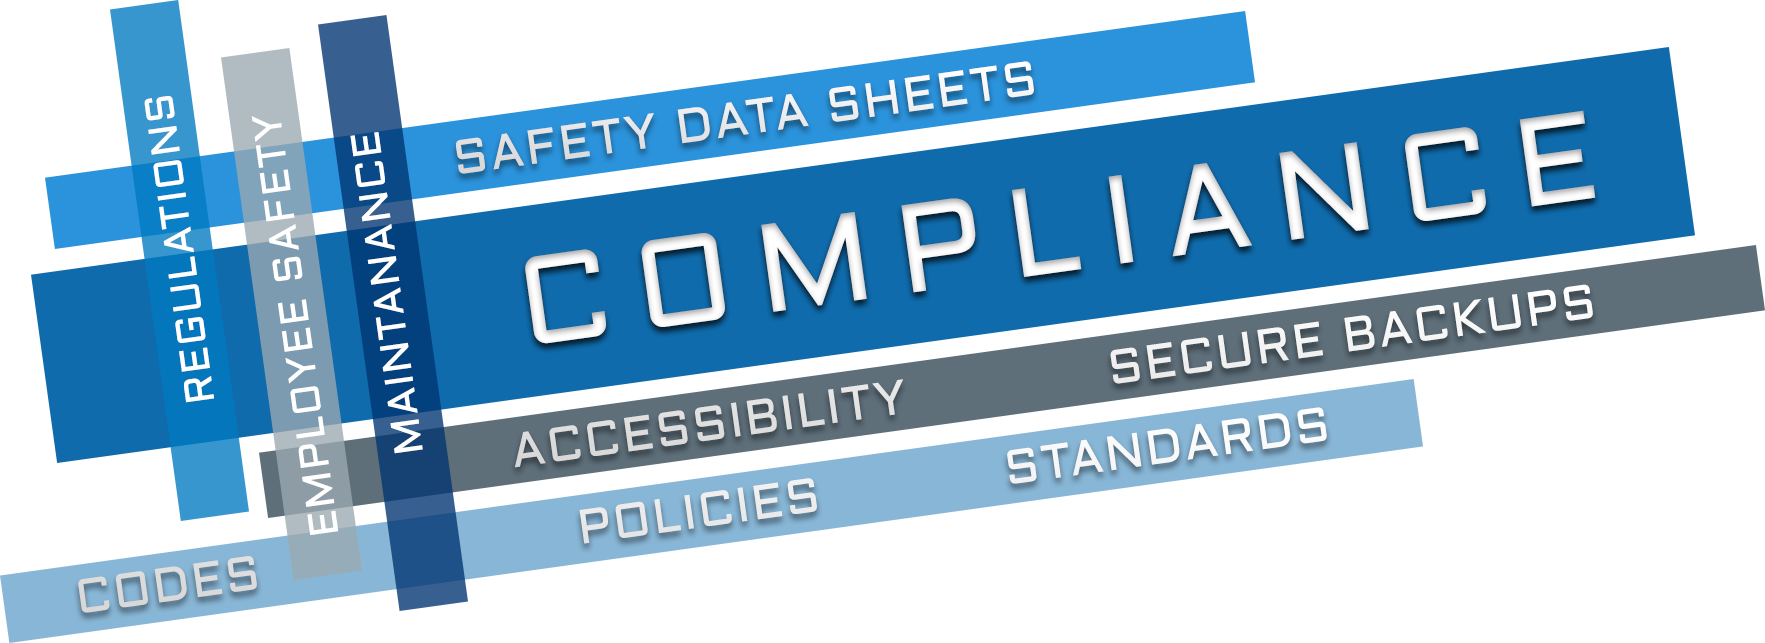 SDS Keep Compliance Graphic